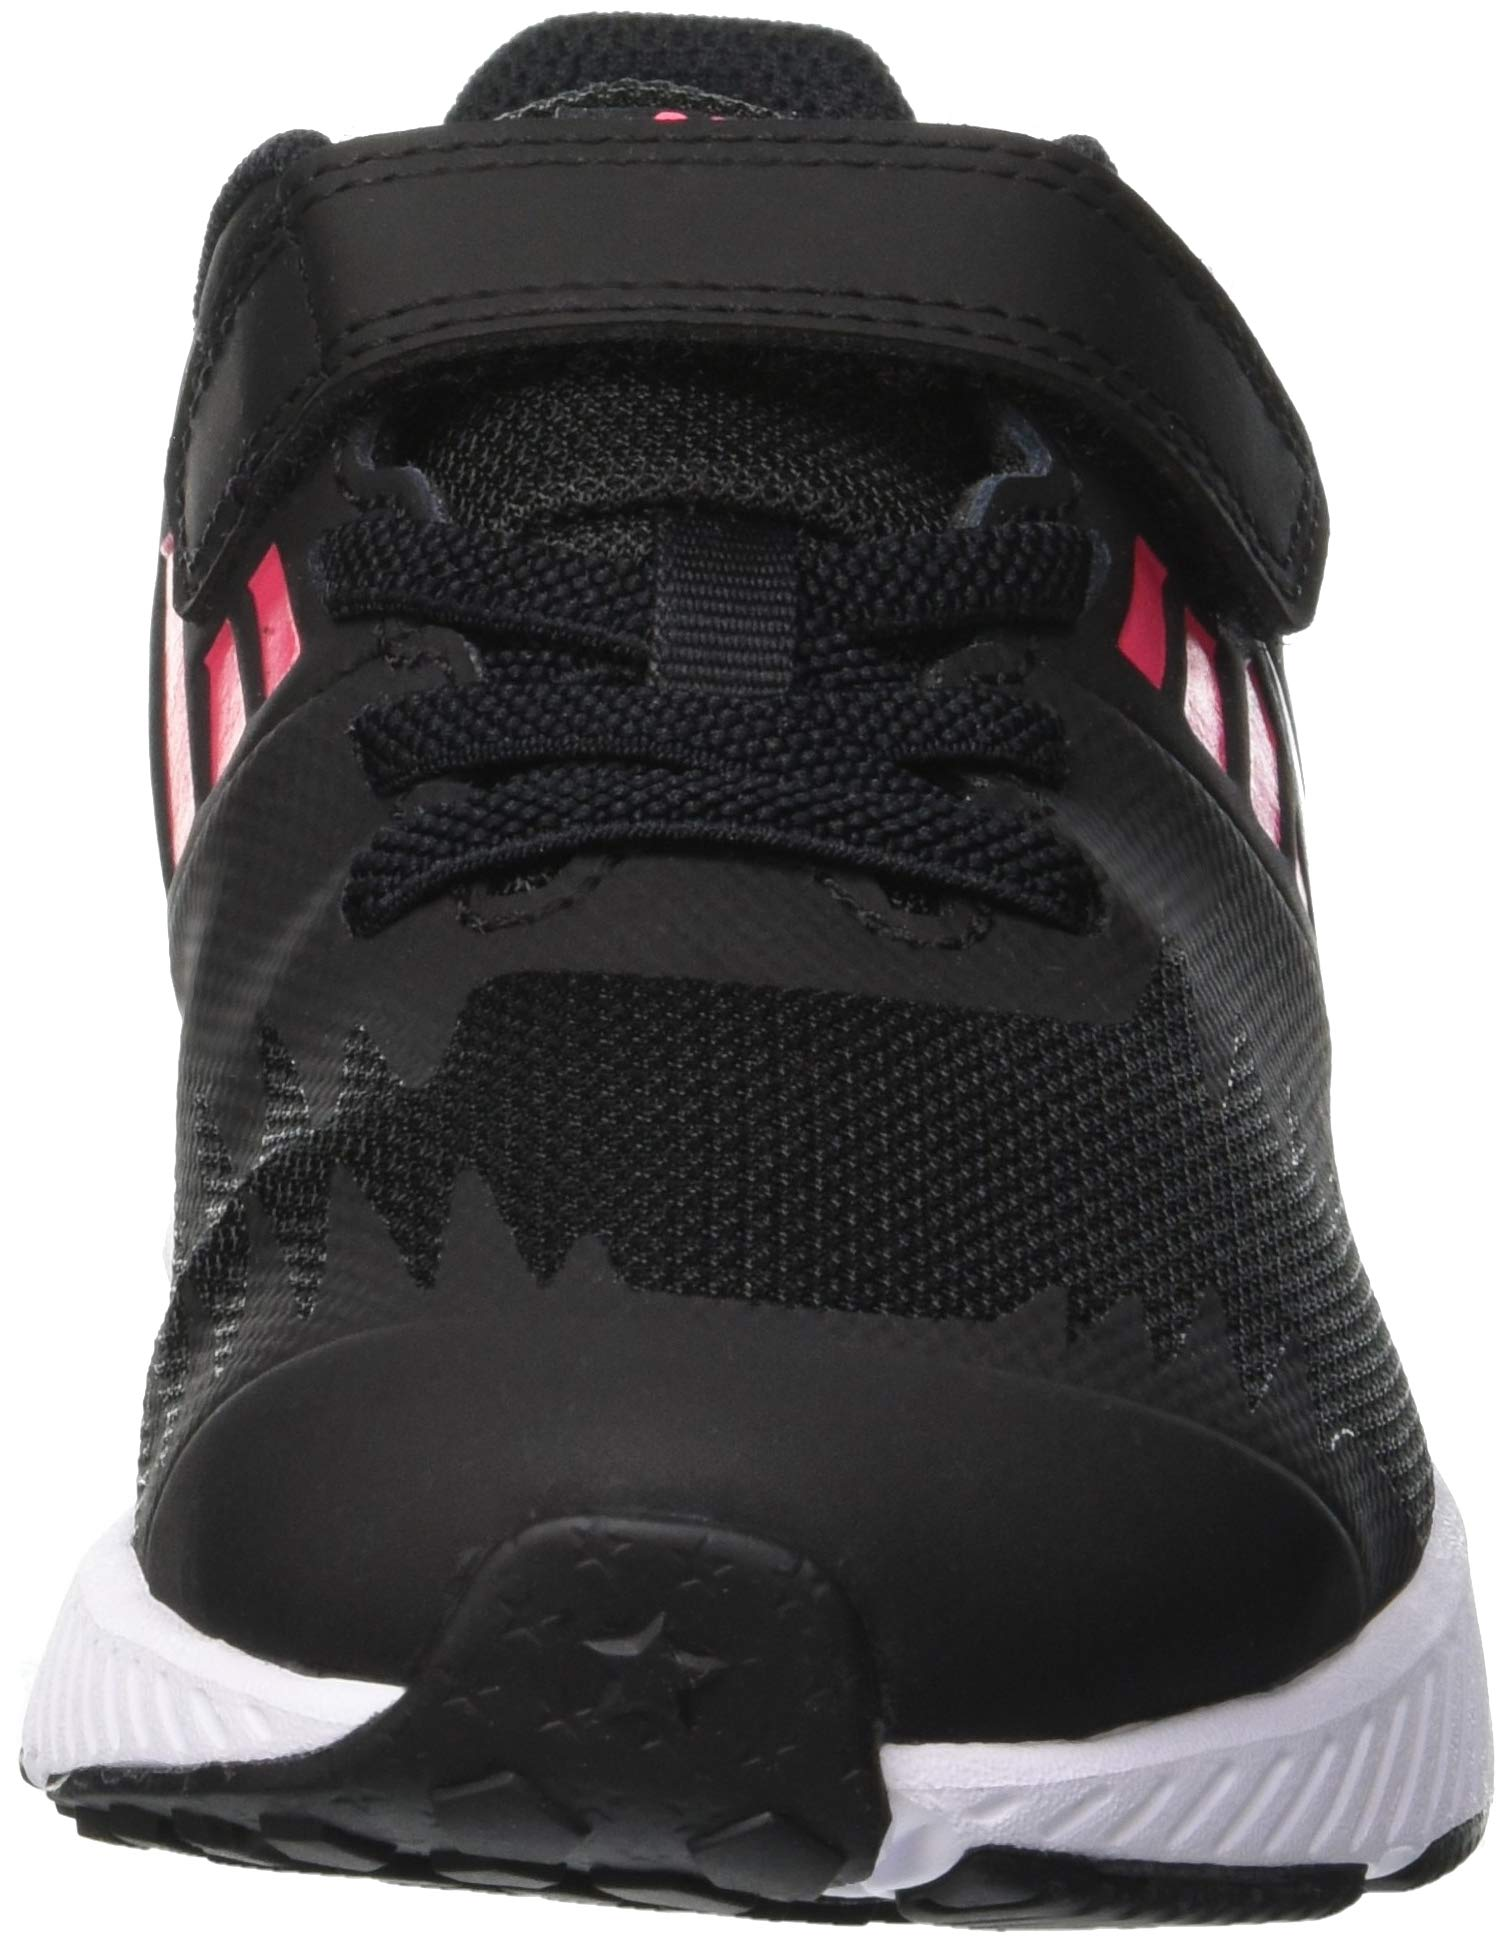 Nike Girl's Star Runner (PSV) Pre-School Shoe Black/Metallic Silver/Racer Pink/Volt Size 1.5 M US by Nike (Image #4)